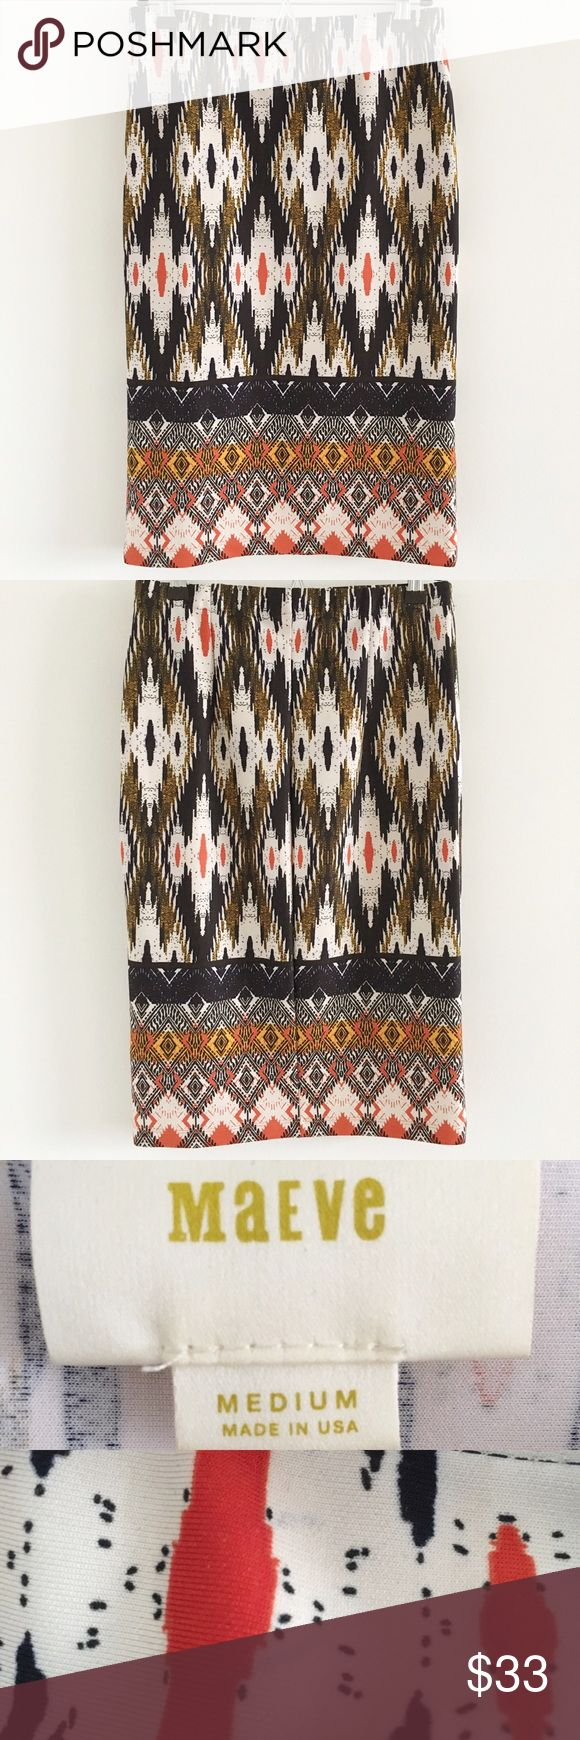 """Anthropologie Maeve Stretch Pencil Skirt A stretchy, tribal print skirt that makes for the perfect statement piece 💕  Stats (laying flat): Length: approx. 25"""" 